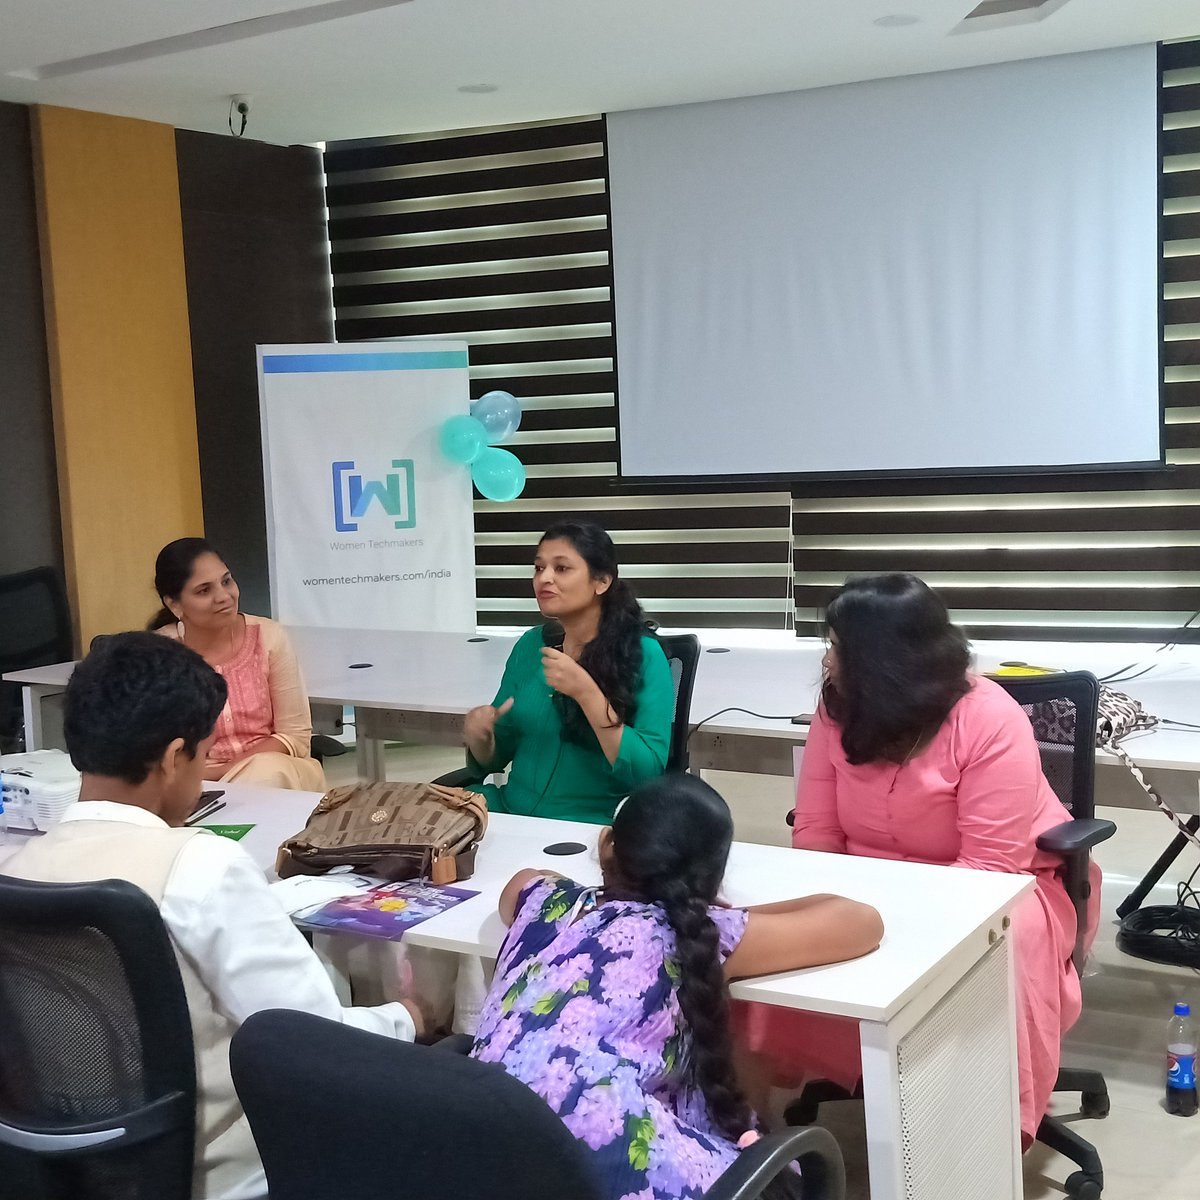 Fireside chat happening here at #IWDWTMVIZAG19 #IWD2019  thank you @gdg and @Google for making this happen.!<br>http://pic.twitter.com/quZC1VBZ8K